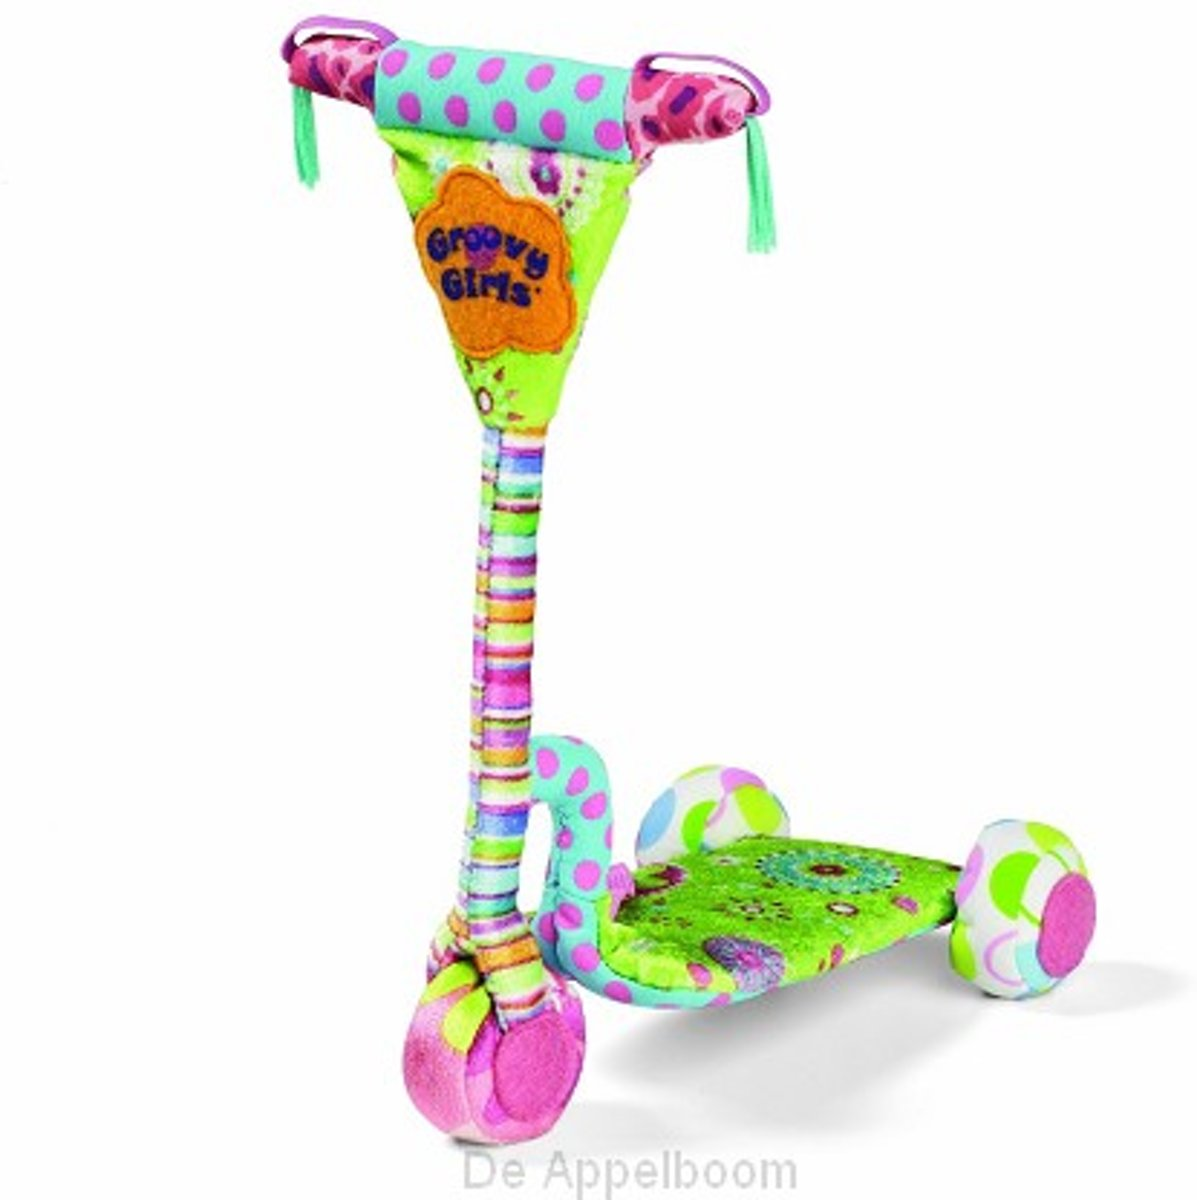 Groovy Girls Scootacular scooter